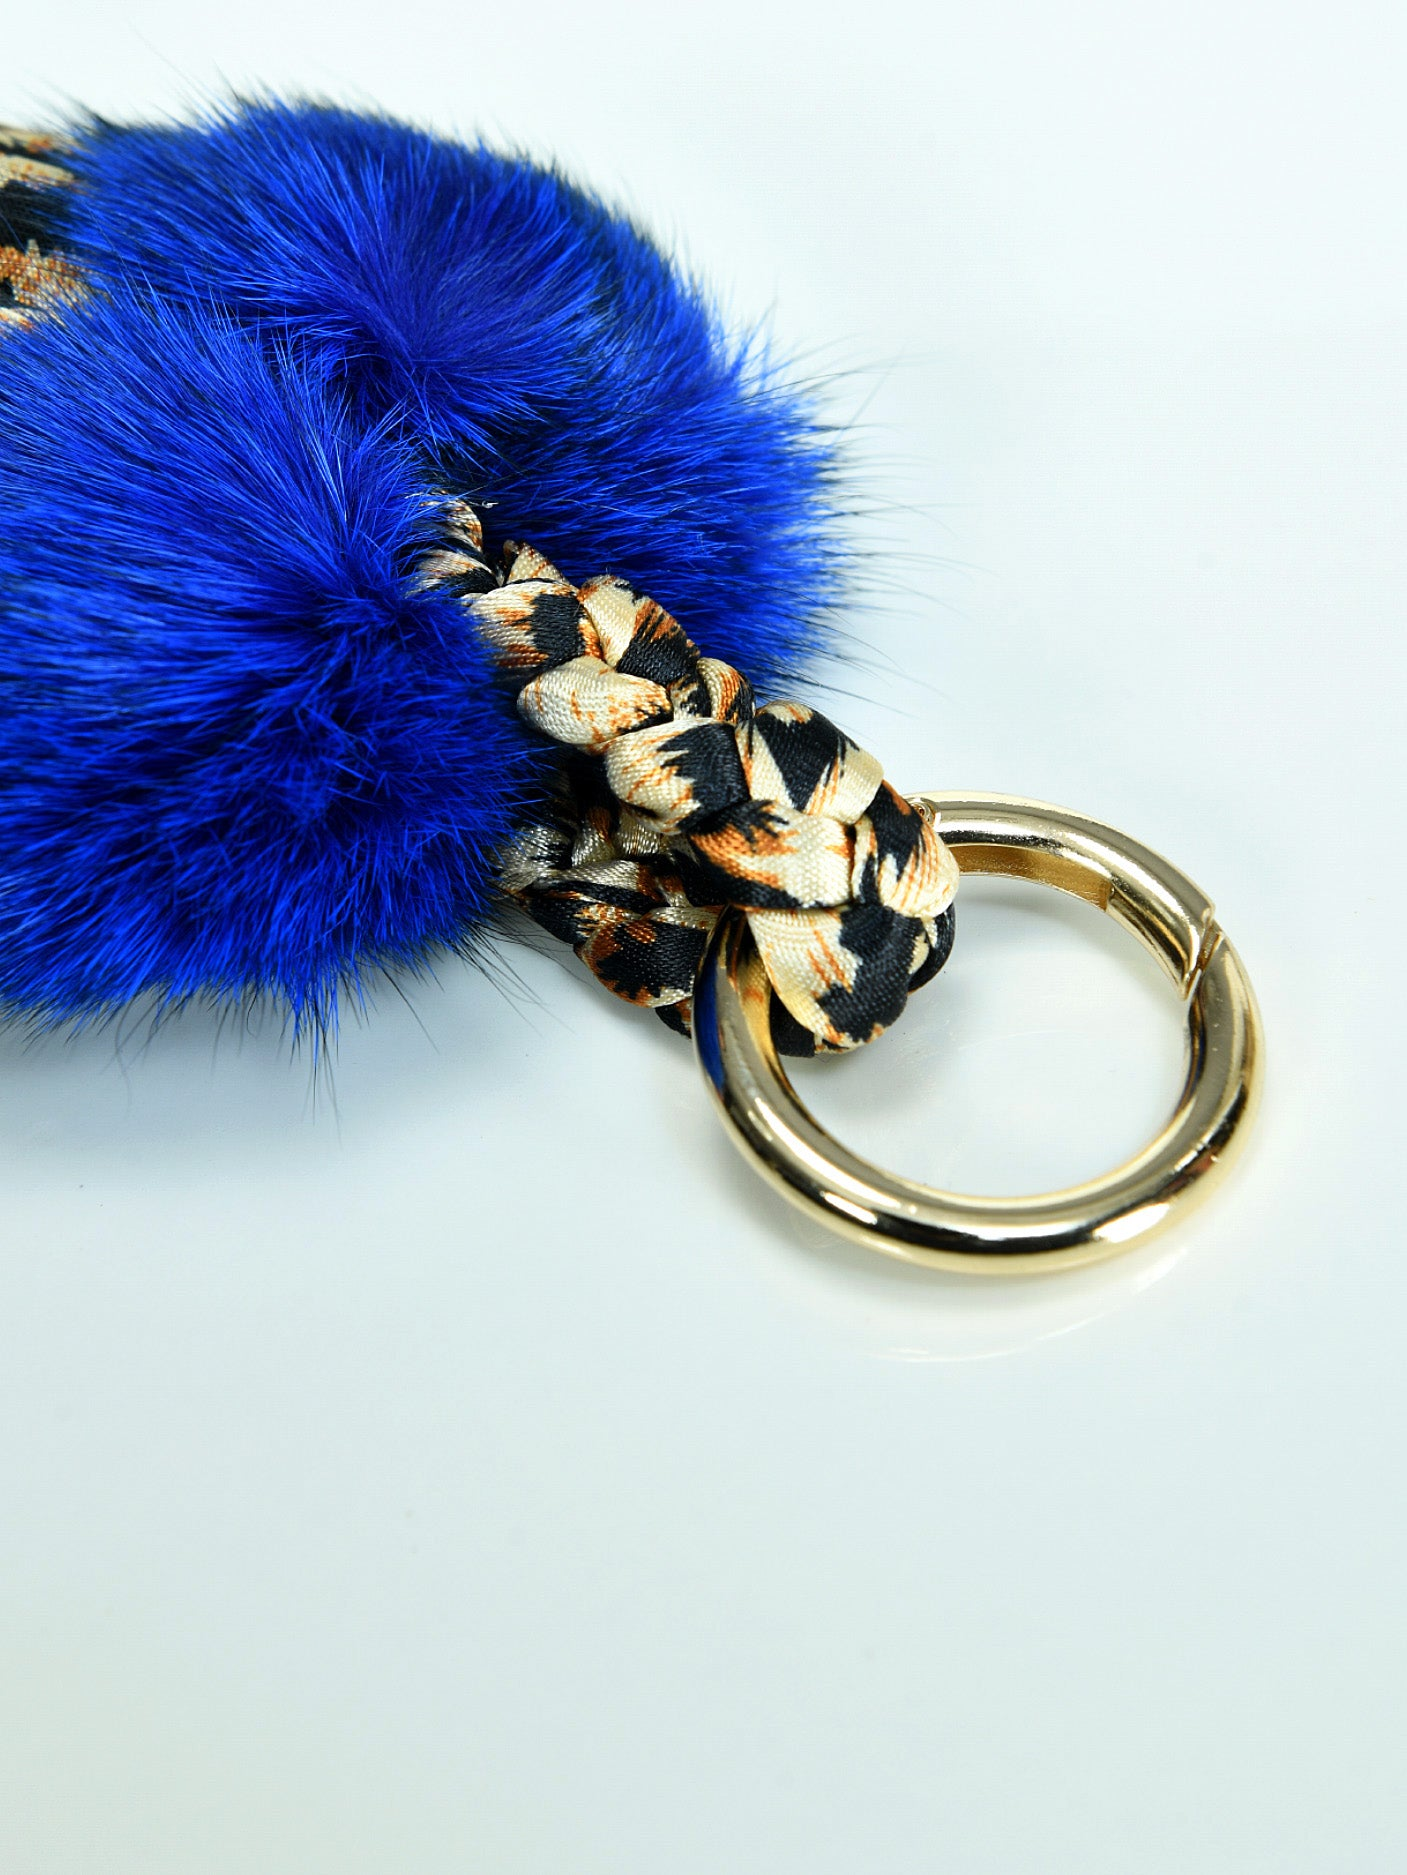 Pompom Tasseled Key Chain